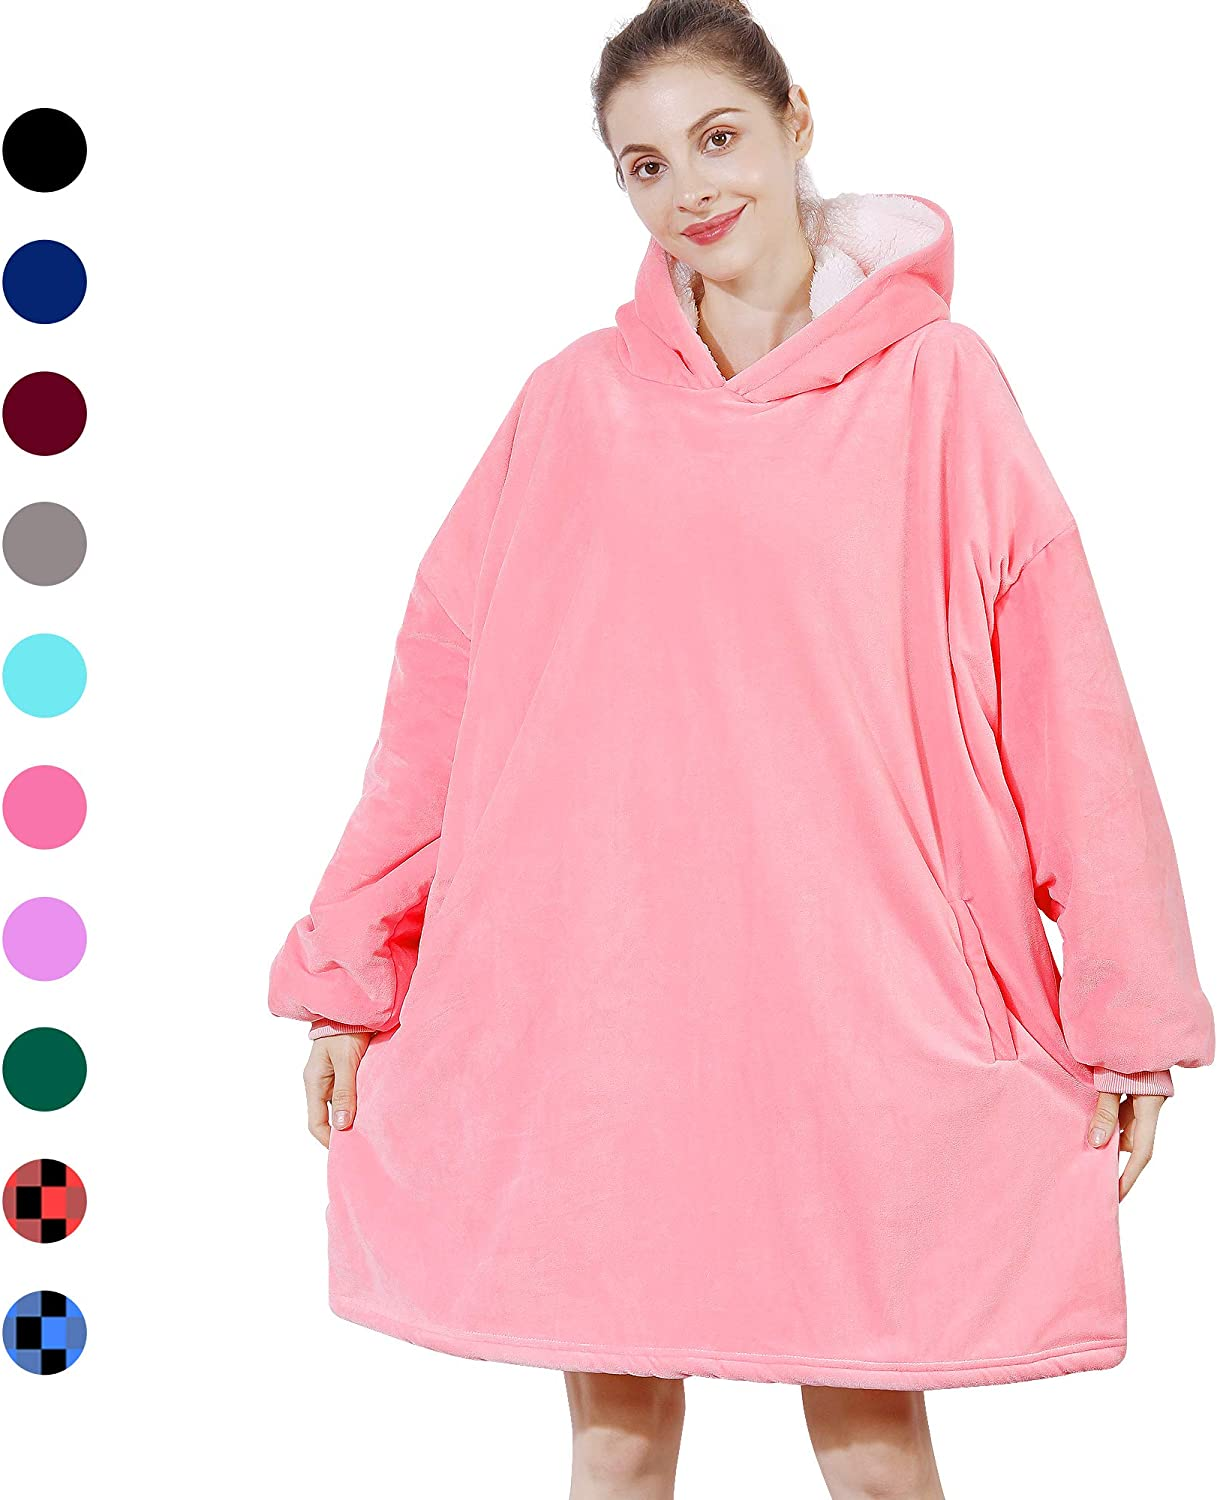 AmyHomie Blanket Sweatshirt, Oversized Sherpa Hooded Sweatshirt,Wearable Fleecehug Hoodie Blanket with Pocket for Adults & Kids & Teen